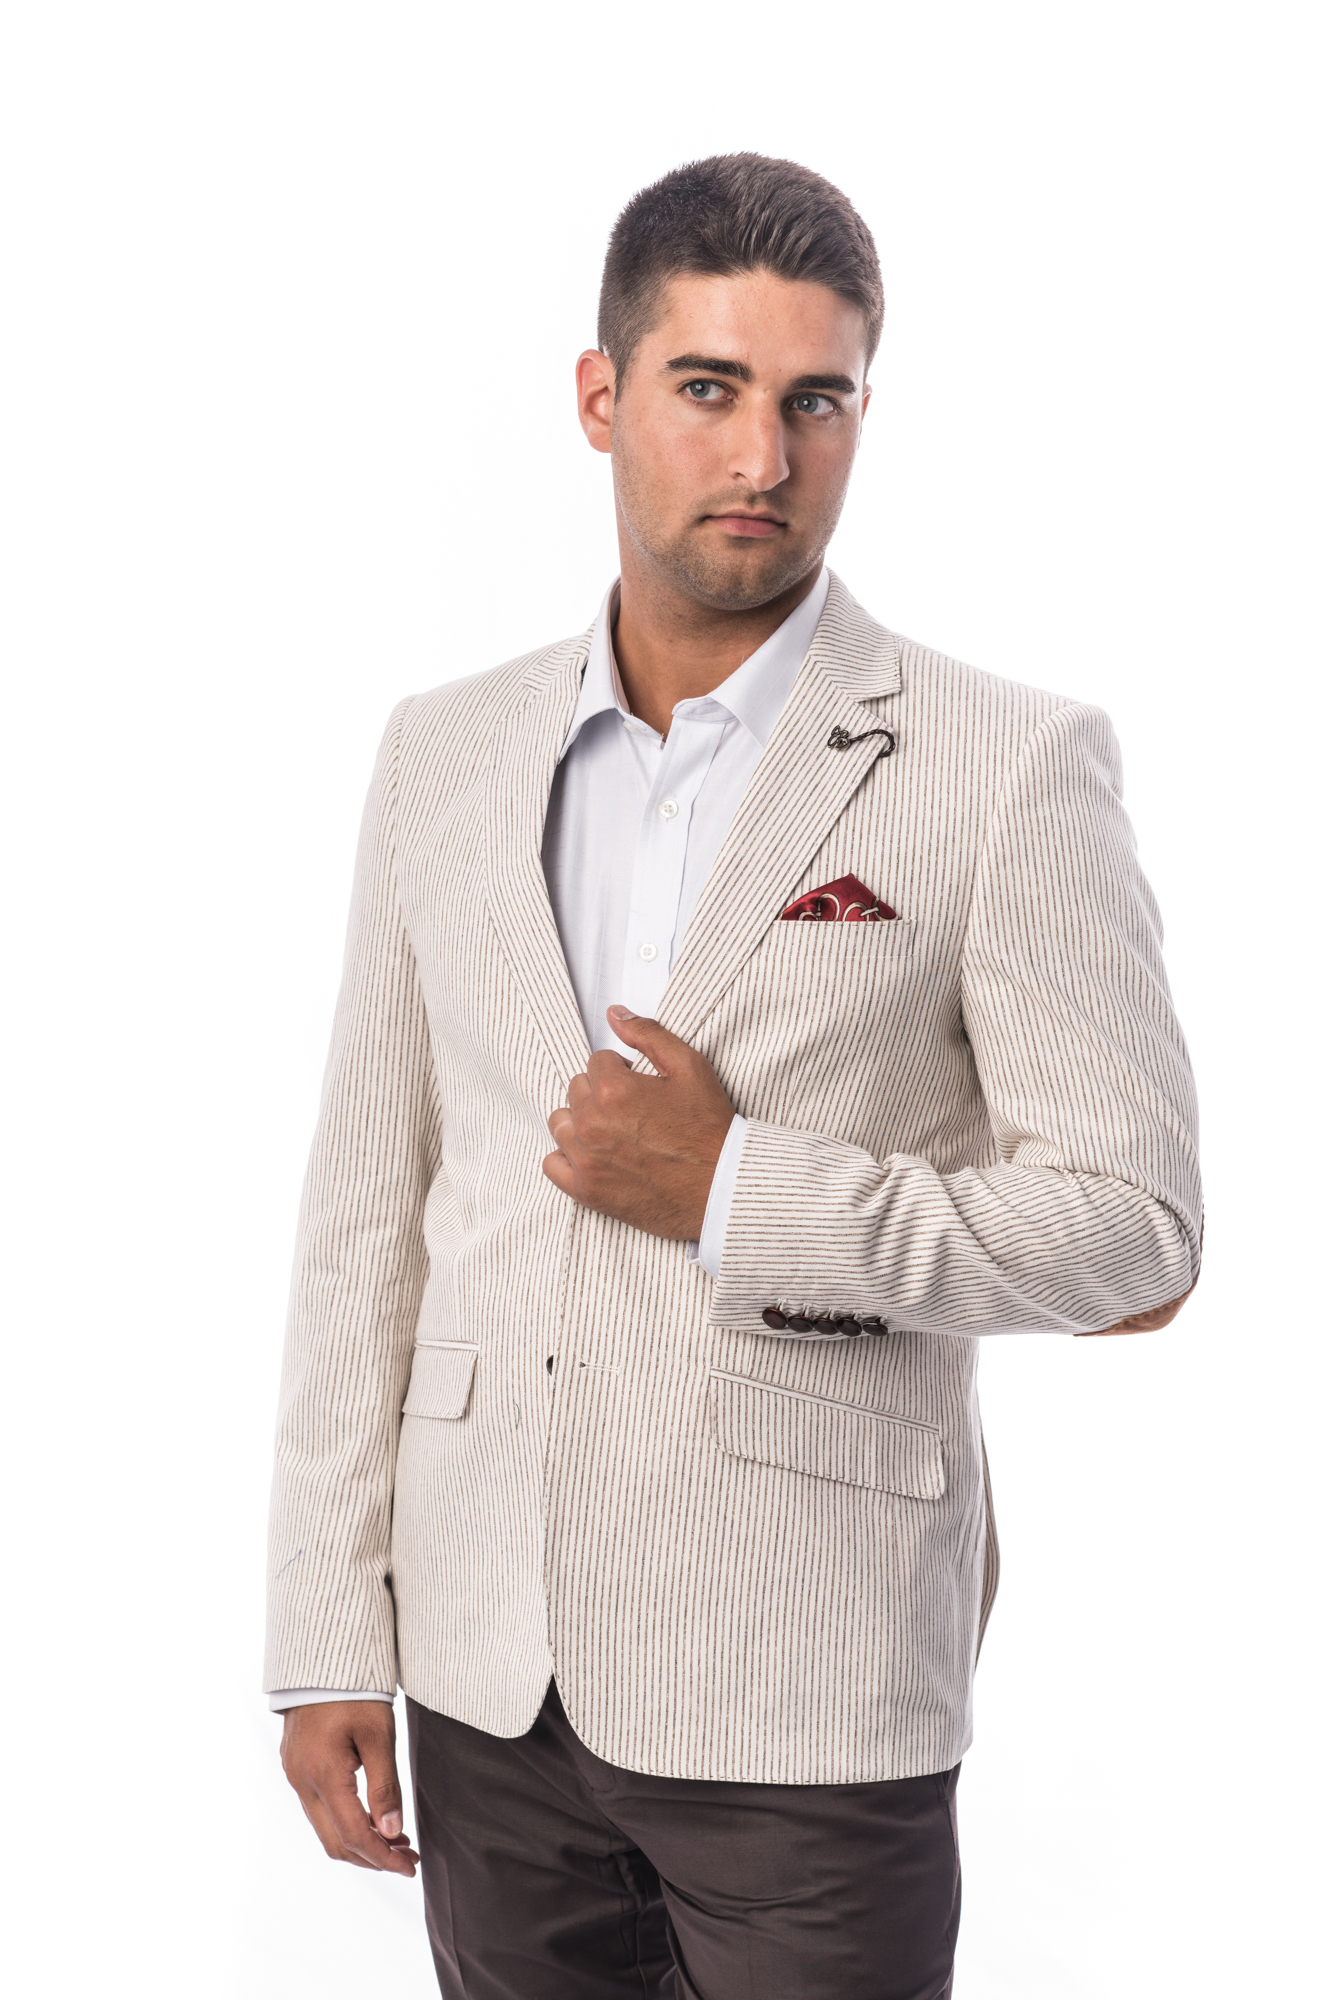 Pinstripe Men Blazers / Sports Coat Jacket EBBS1705M